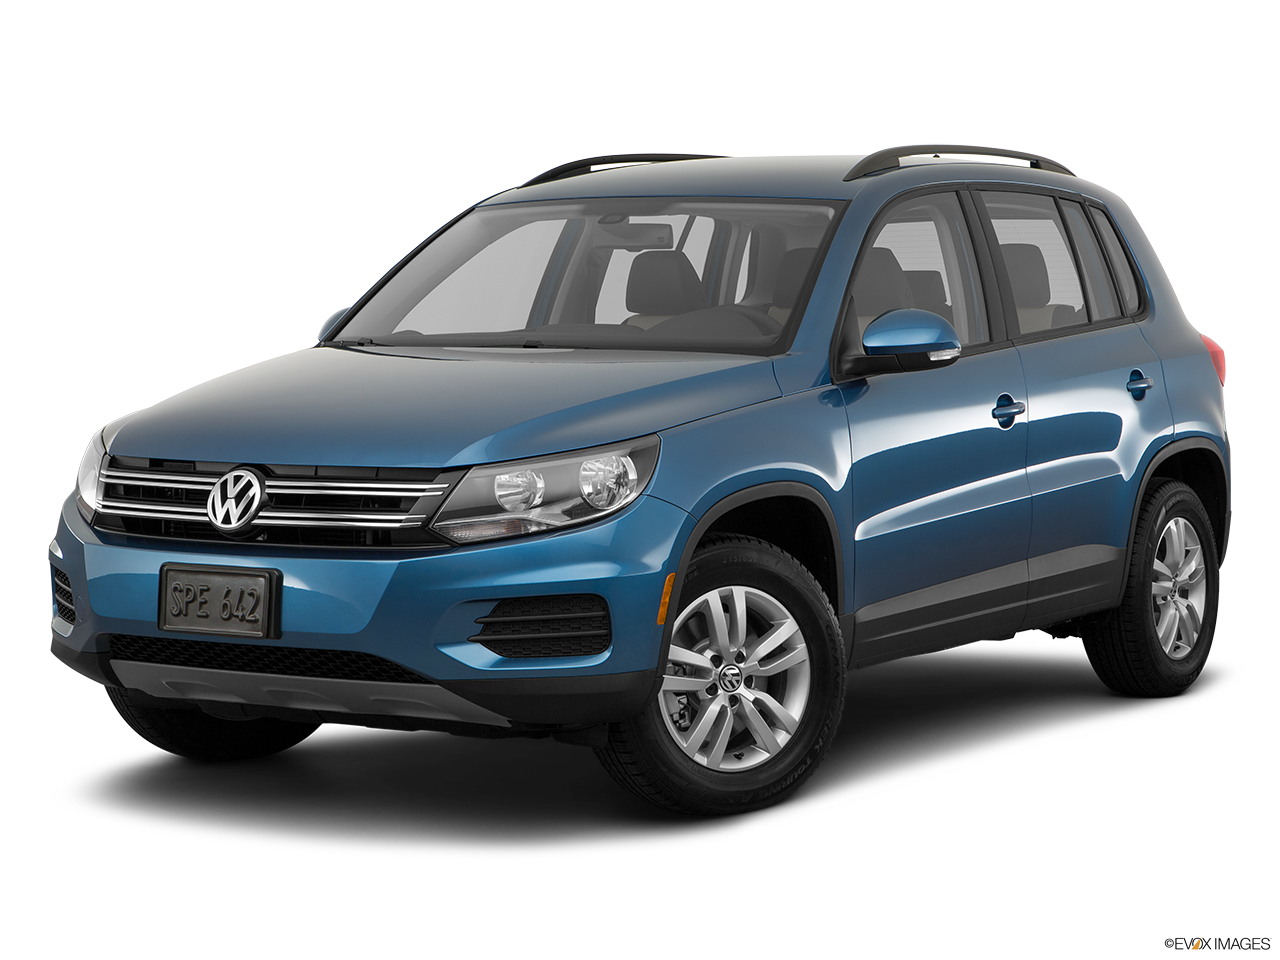 Test Drive A 2017 Volkswagen Tiguan at Casey Volkswagen in Newport News